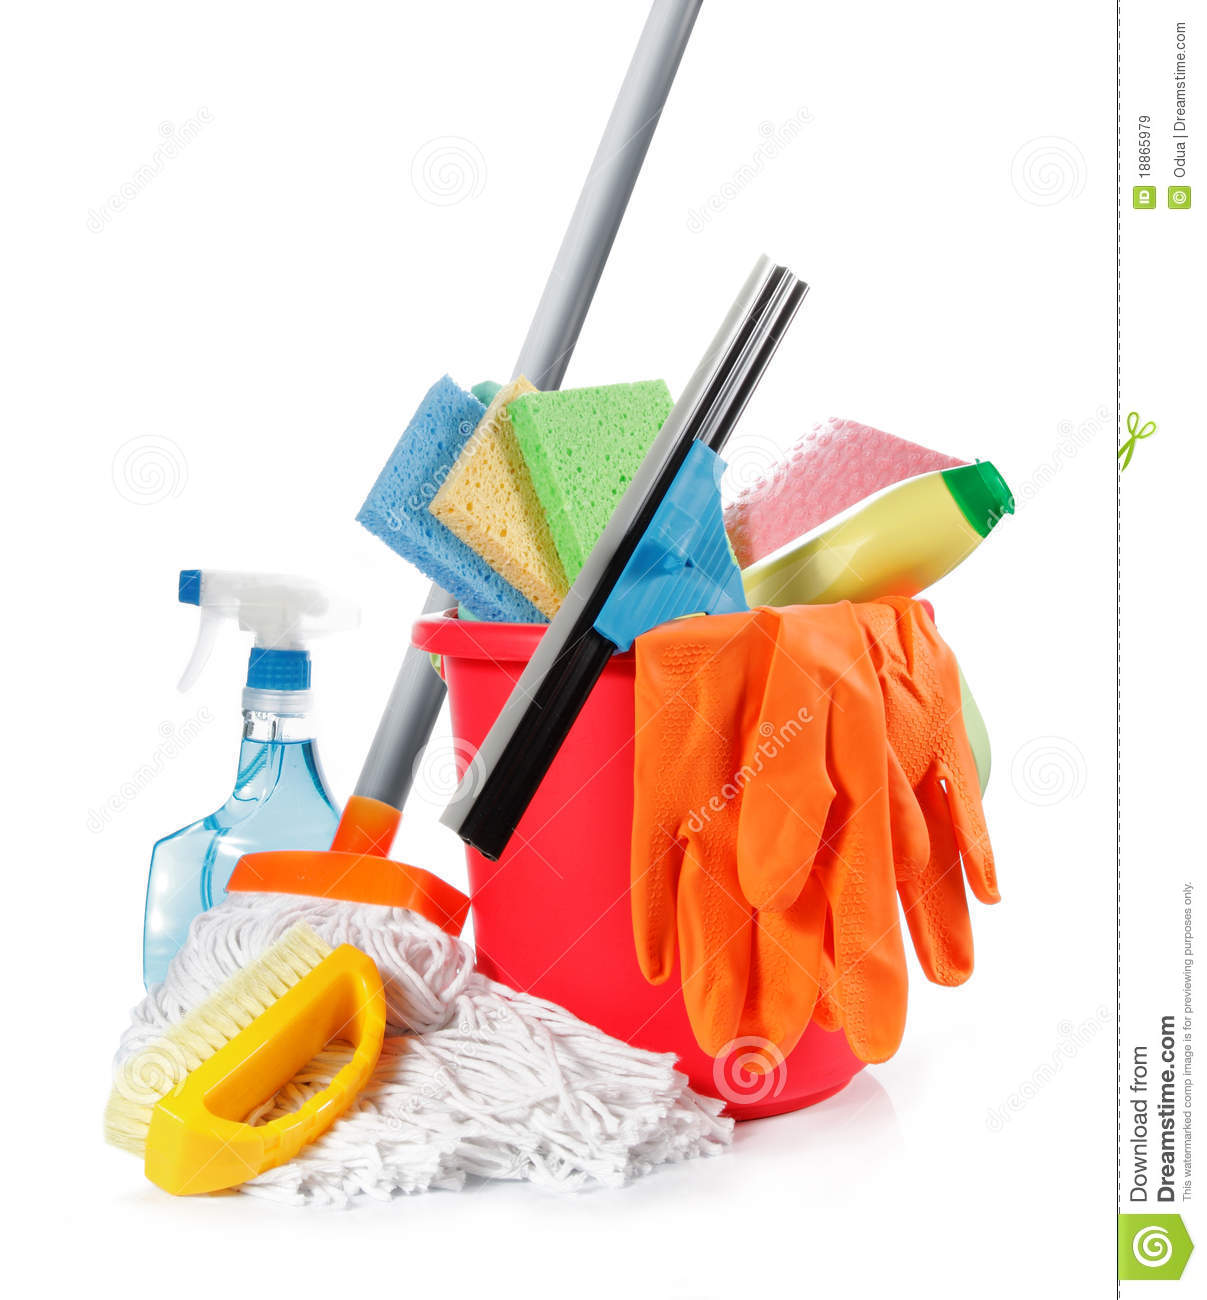 Cleaning products stock image image of concept cloth for Productos de limpieza